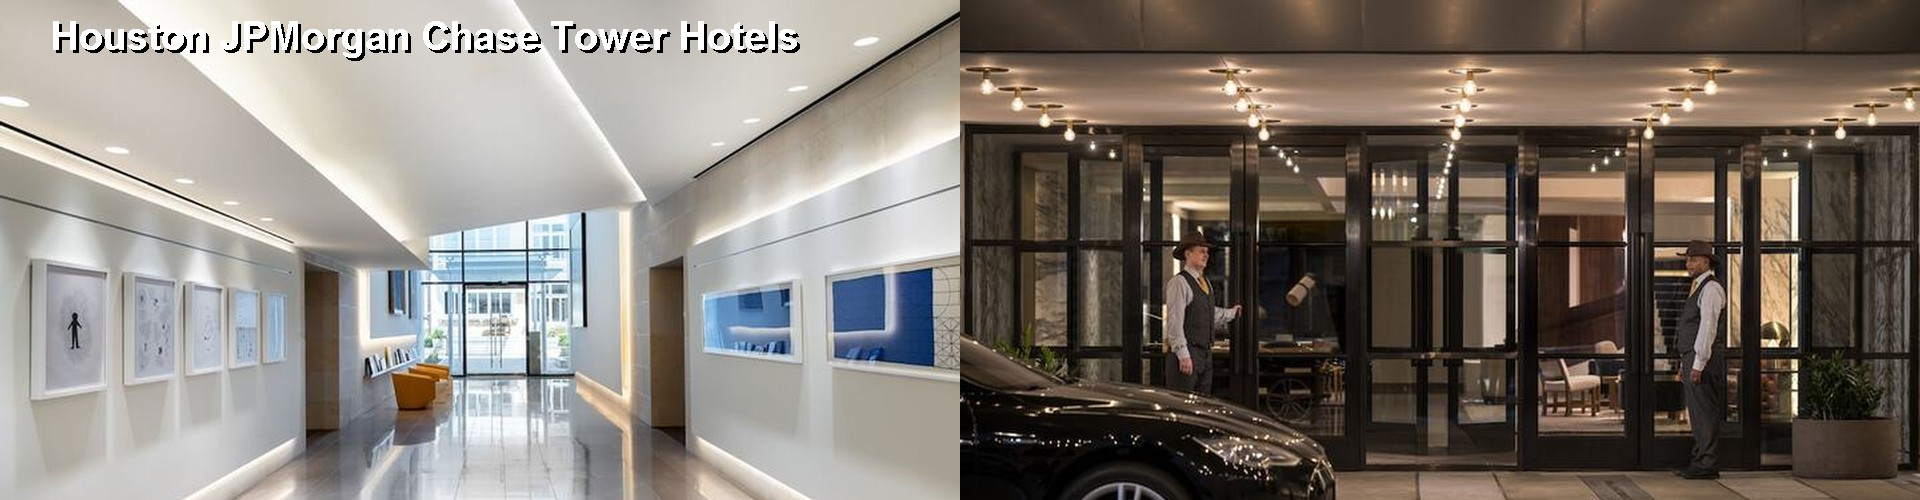 5 Best Hotels near Houston JPMorgan Chase Tower